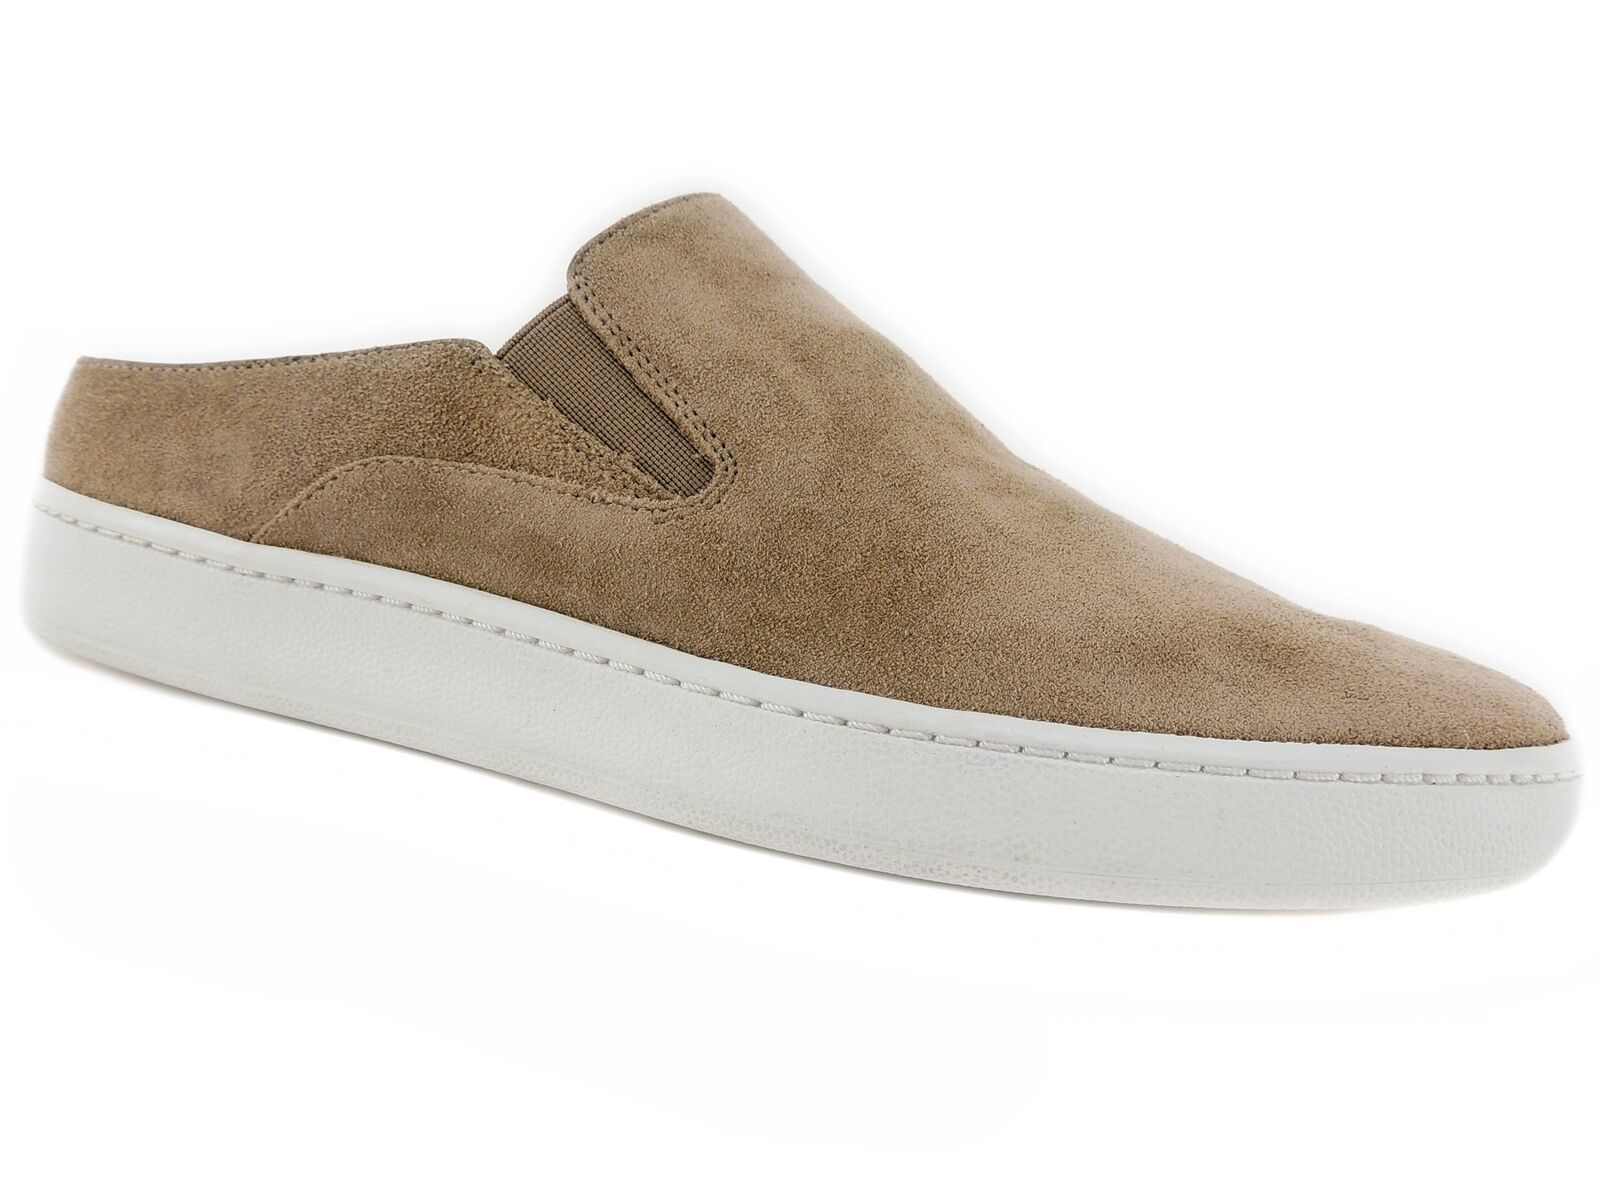 Vince Women's Verrell-2 Backless Comfort Sneakers Woodsmoke Suede Size 6 M